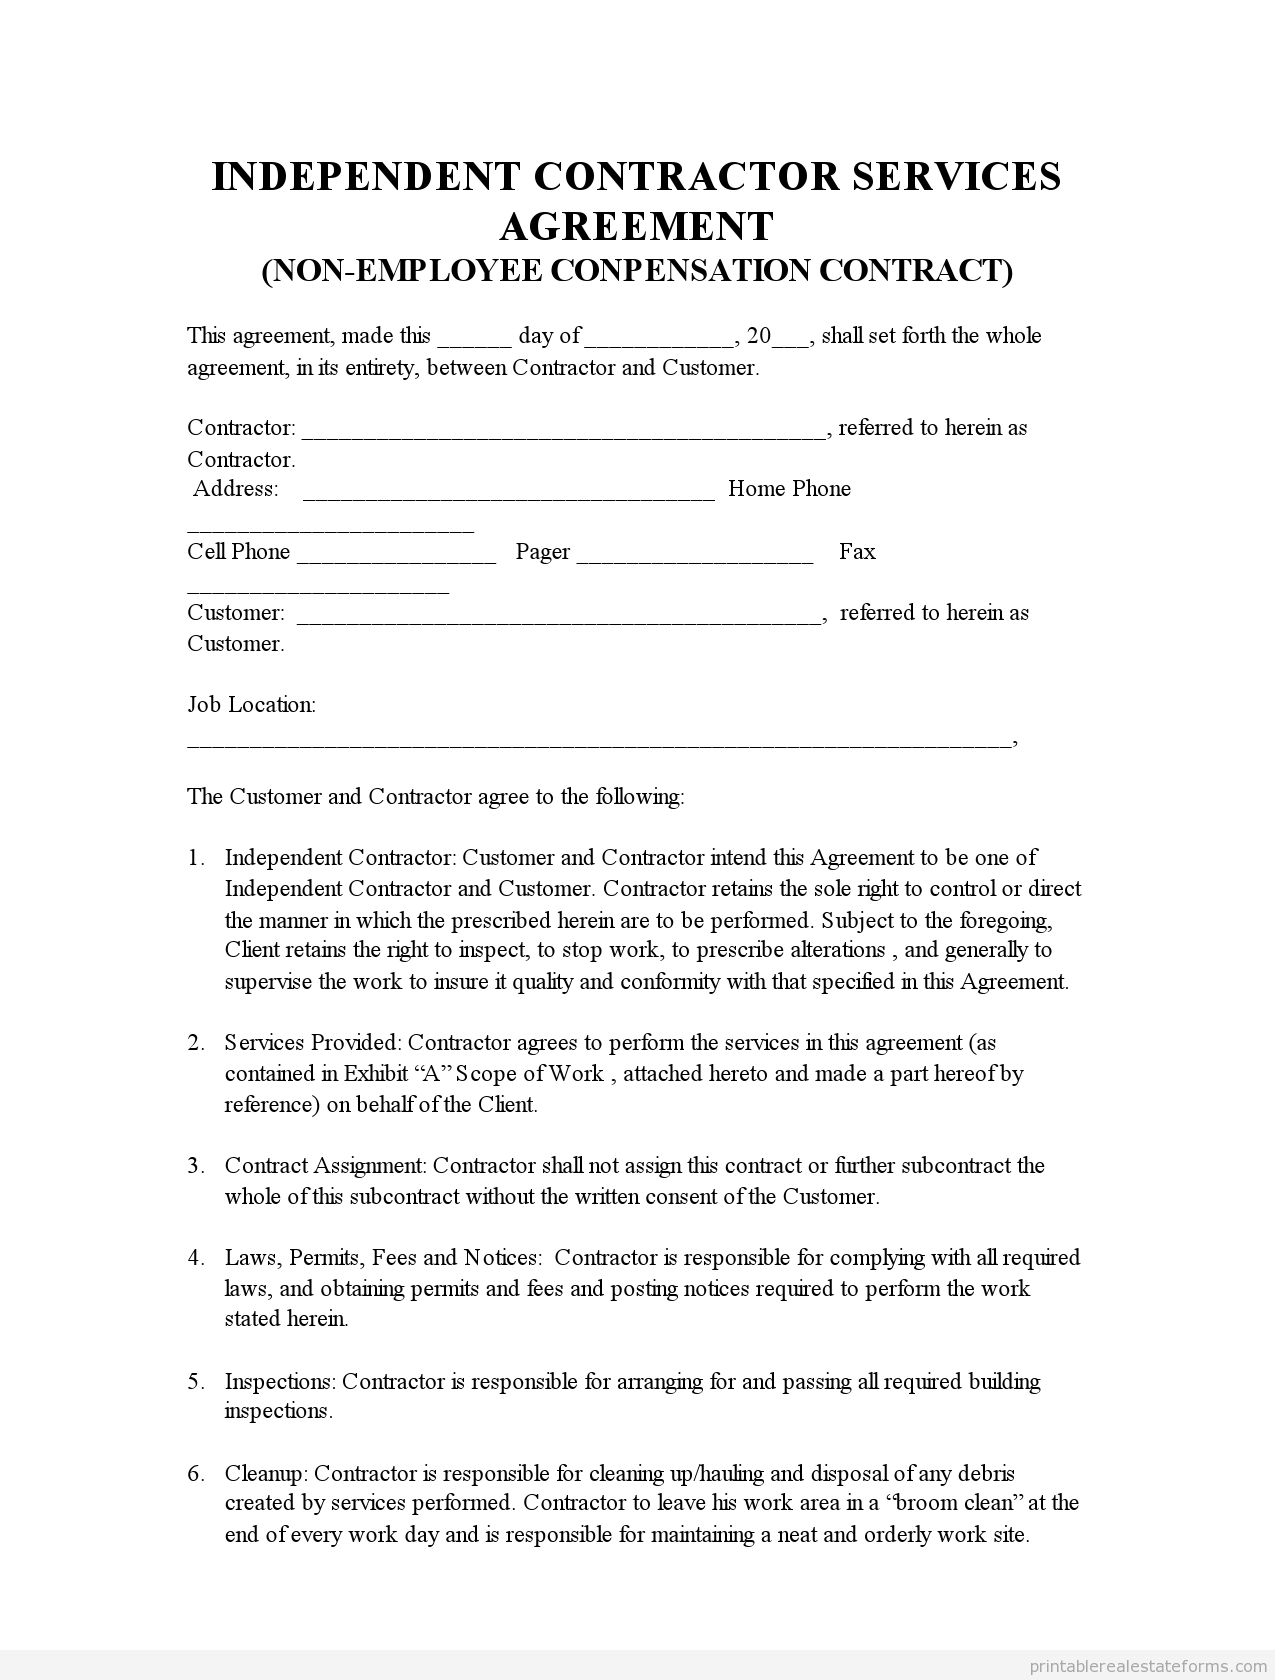 Sample Printable Indep Contractor Agreement 2 Form